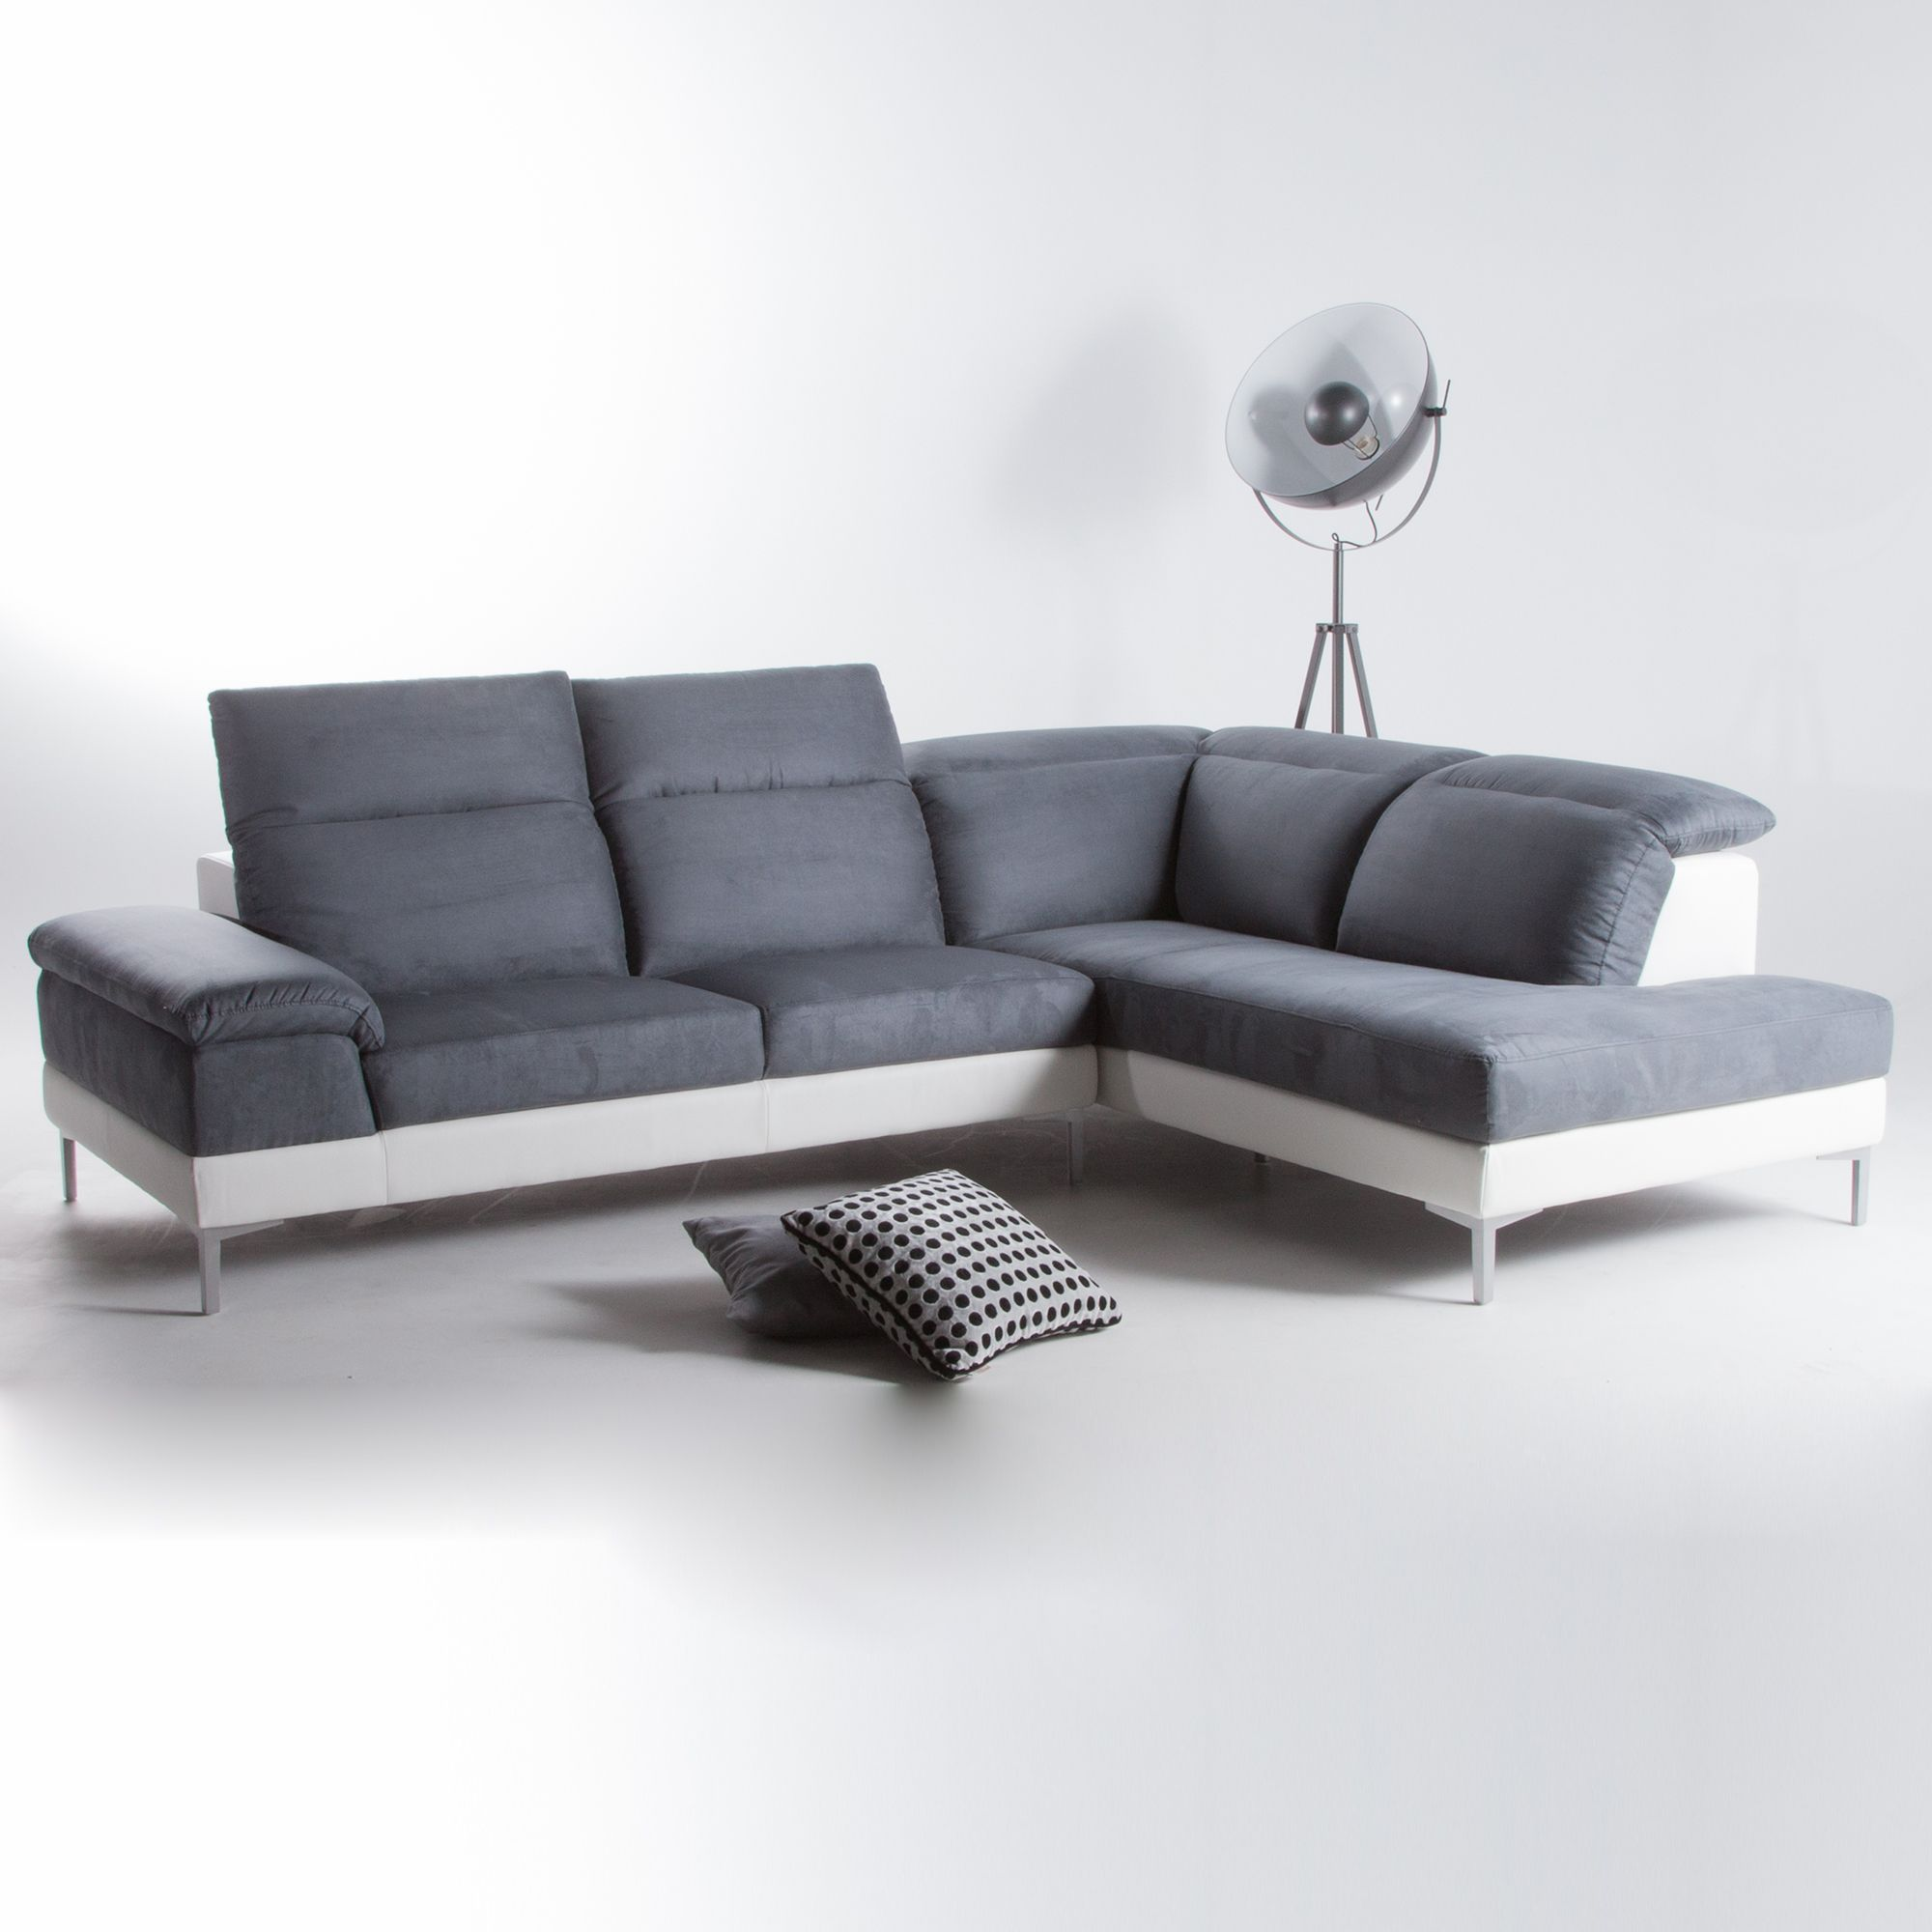 Canape D Angle Microfibre Simili 4 Places Gris Blanc Tetieres Reglables Agatha Urban Living Port Offert Sectional Couch Couch Furniture